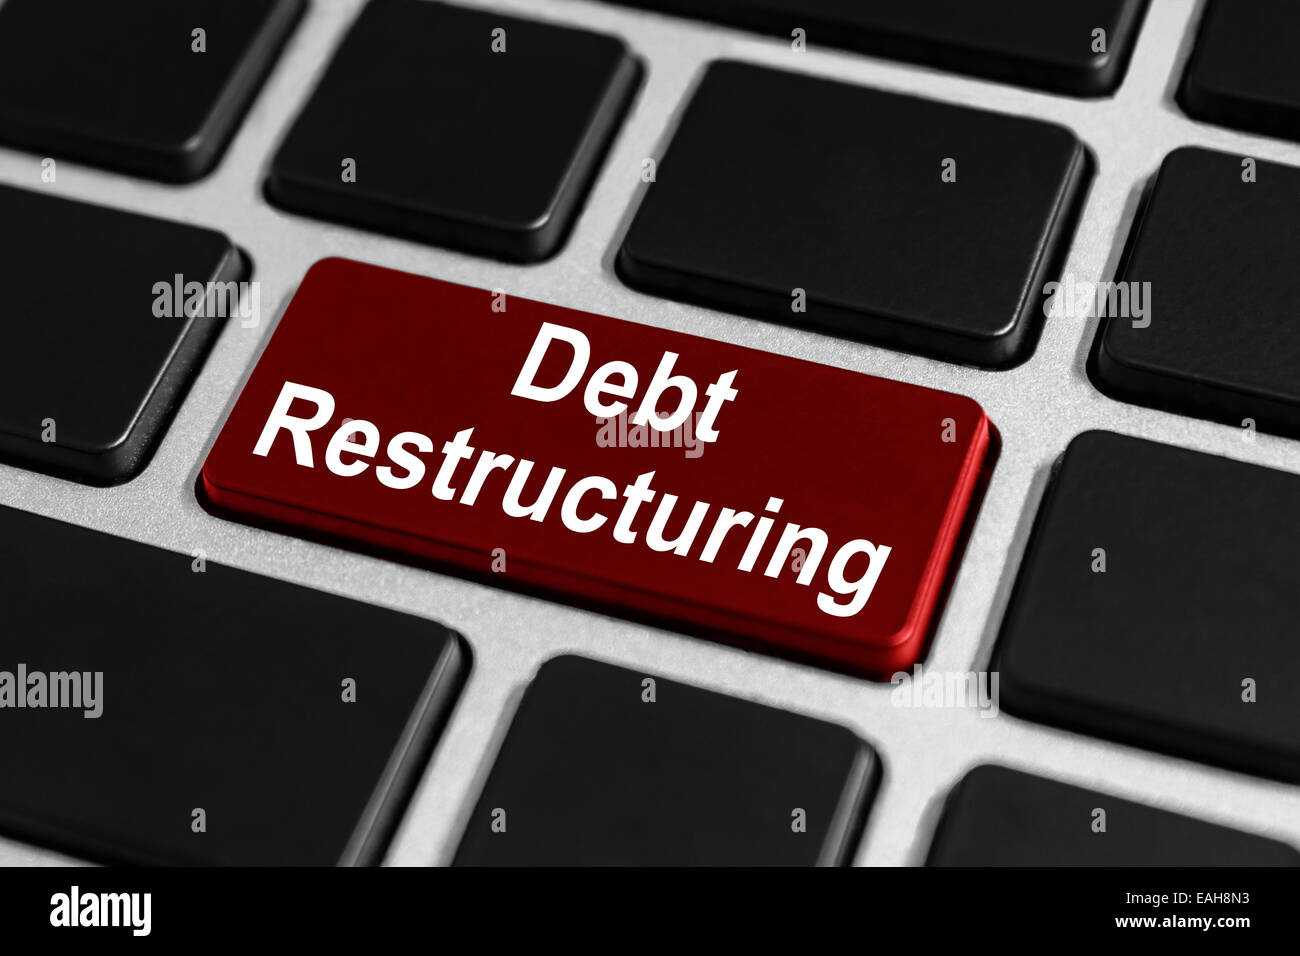 debt restructuring red button on keyboard, business concept - Stock Image